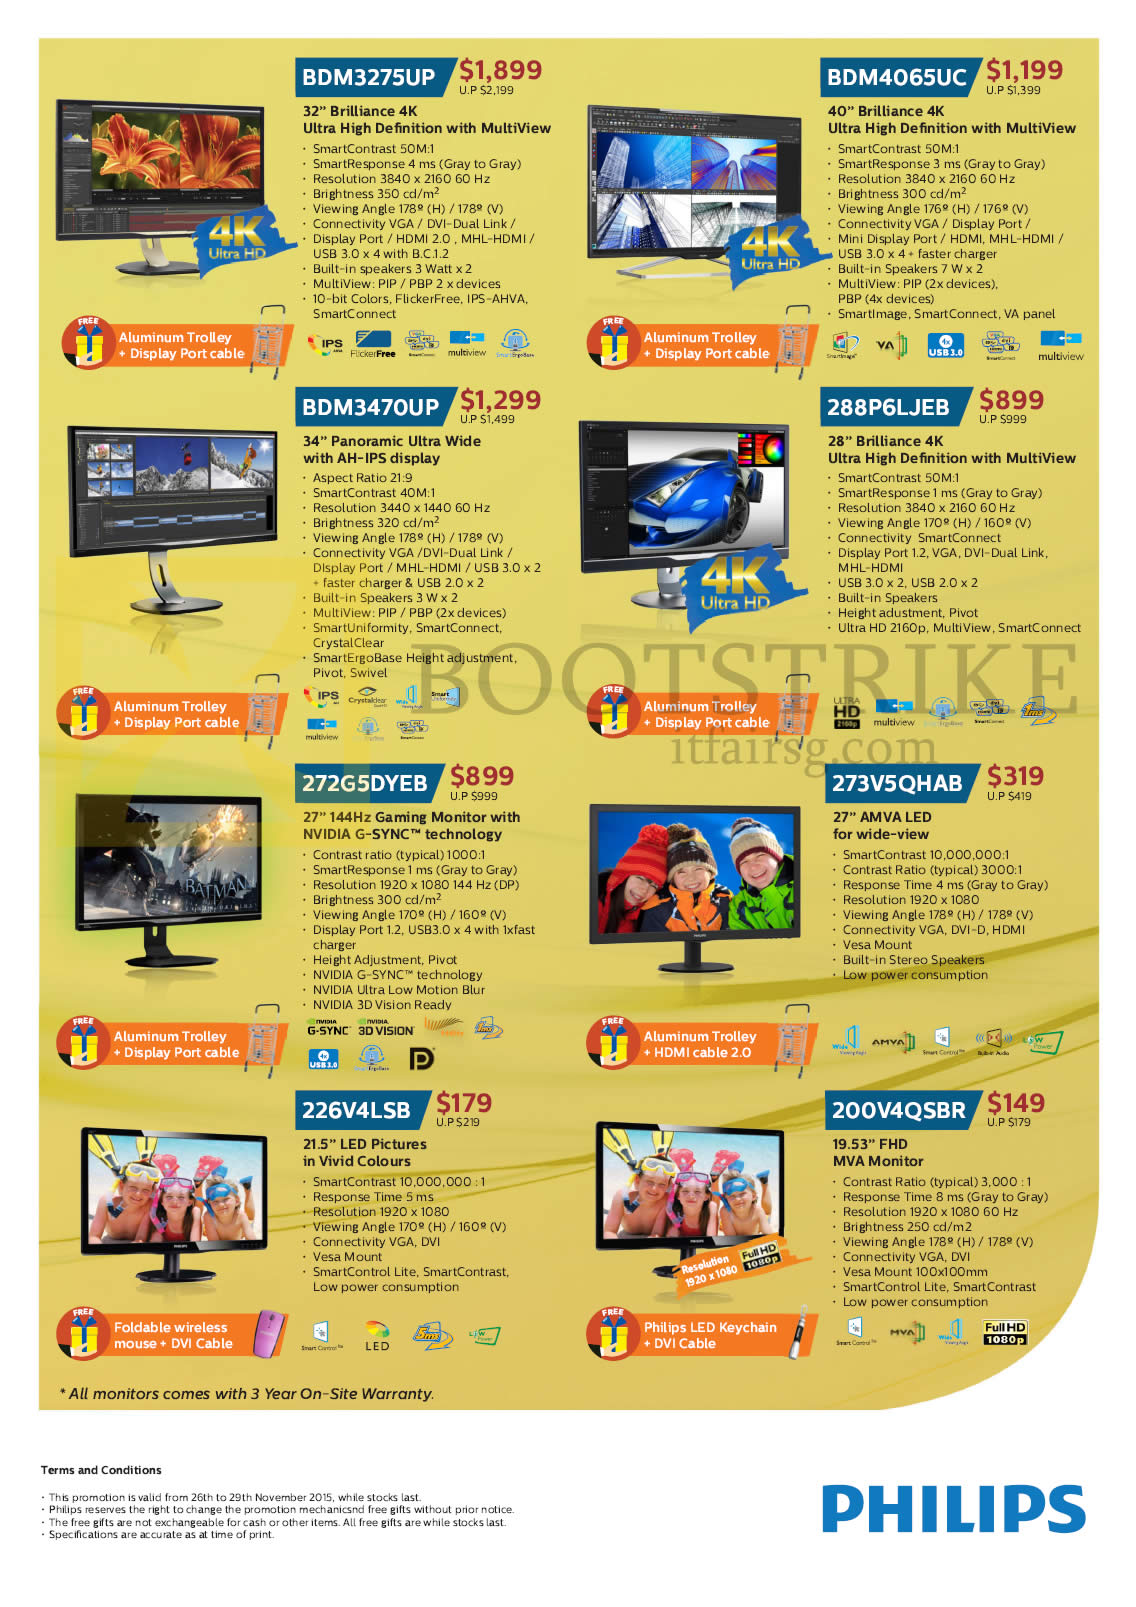 SITEX 2015 price list image brochure of Philips Monitors LED IPS 4K BDM3275UP, BDM4065UC, BDM3470UP, 288P6LJEB, 272G5DYEB, 273V5QHAB, 226V4LSB, 200V4QSBR